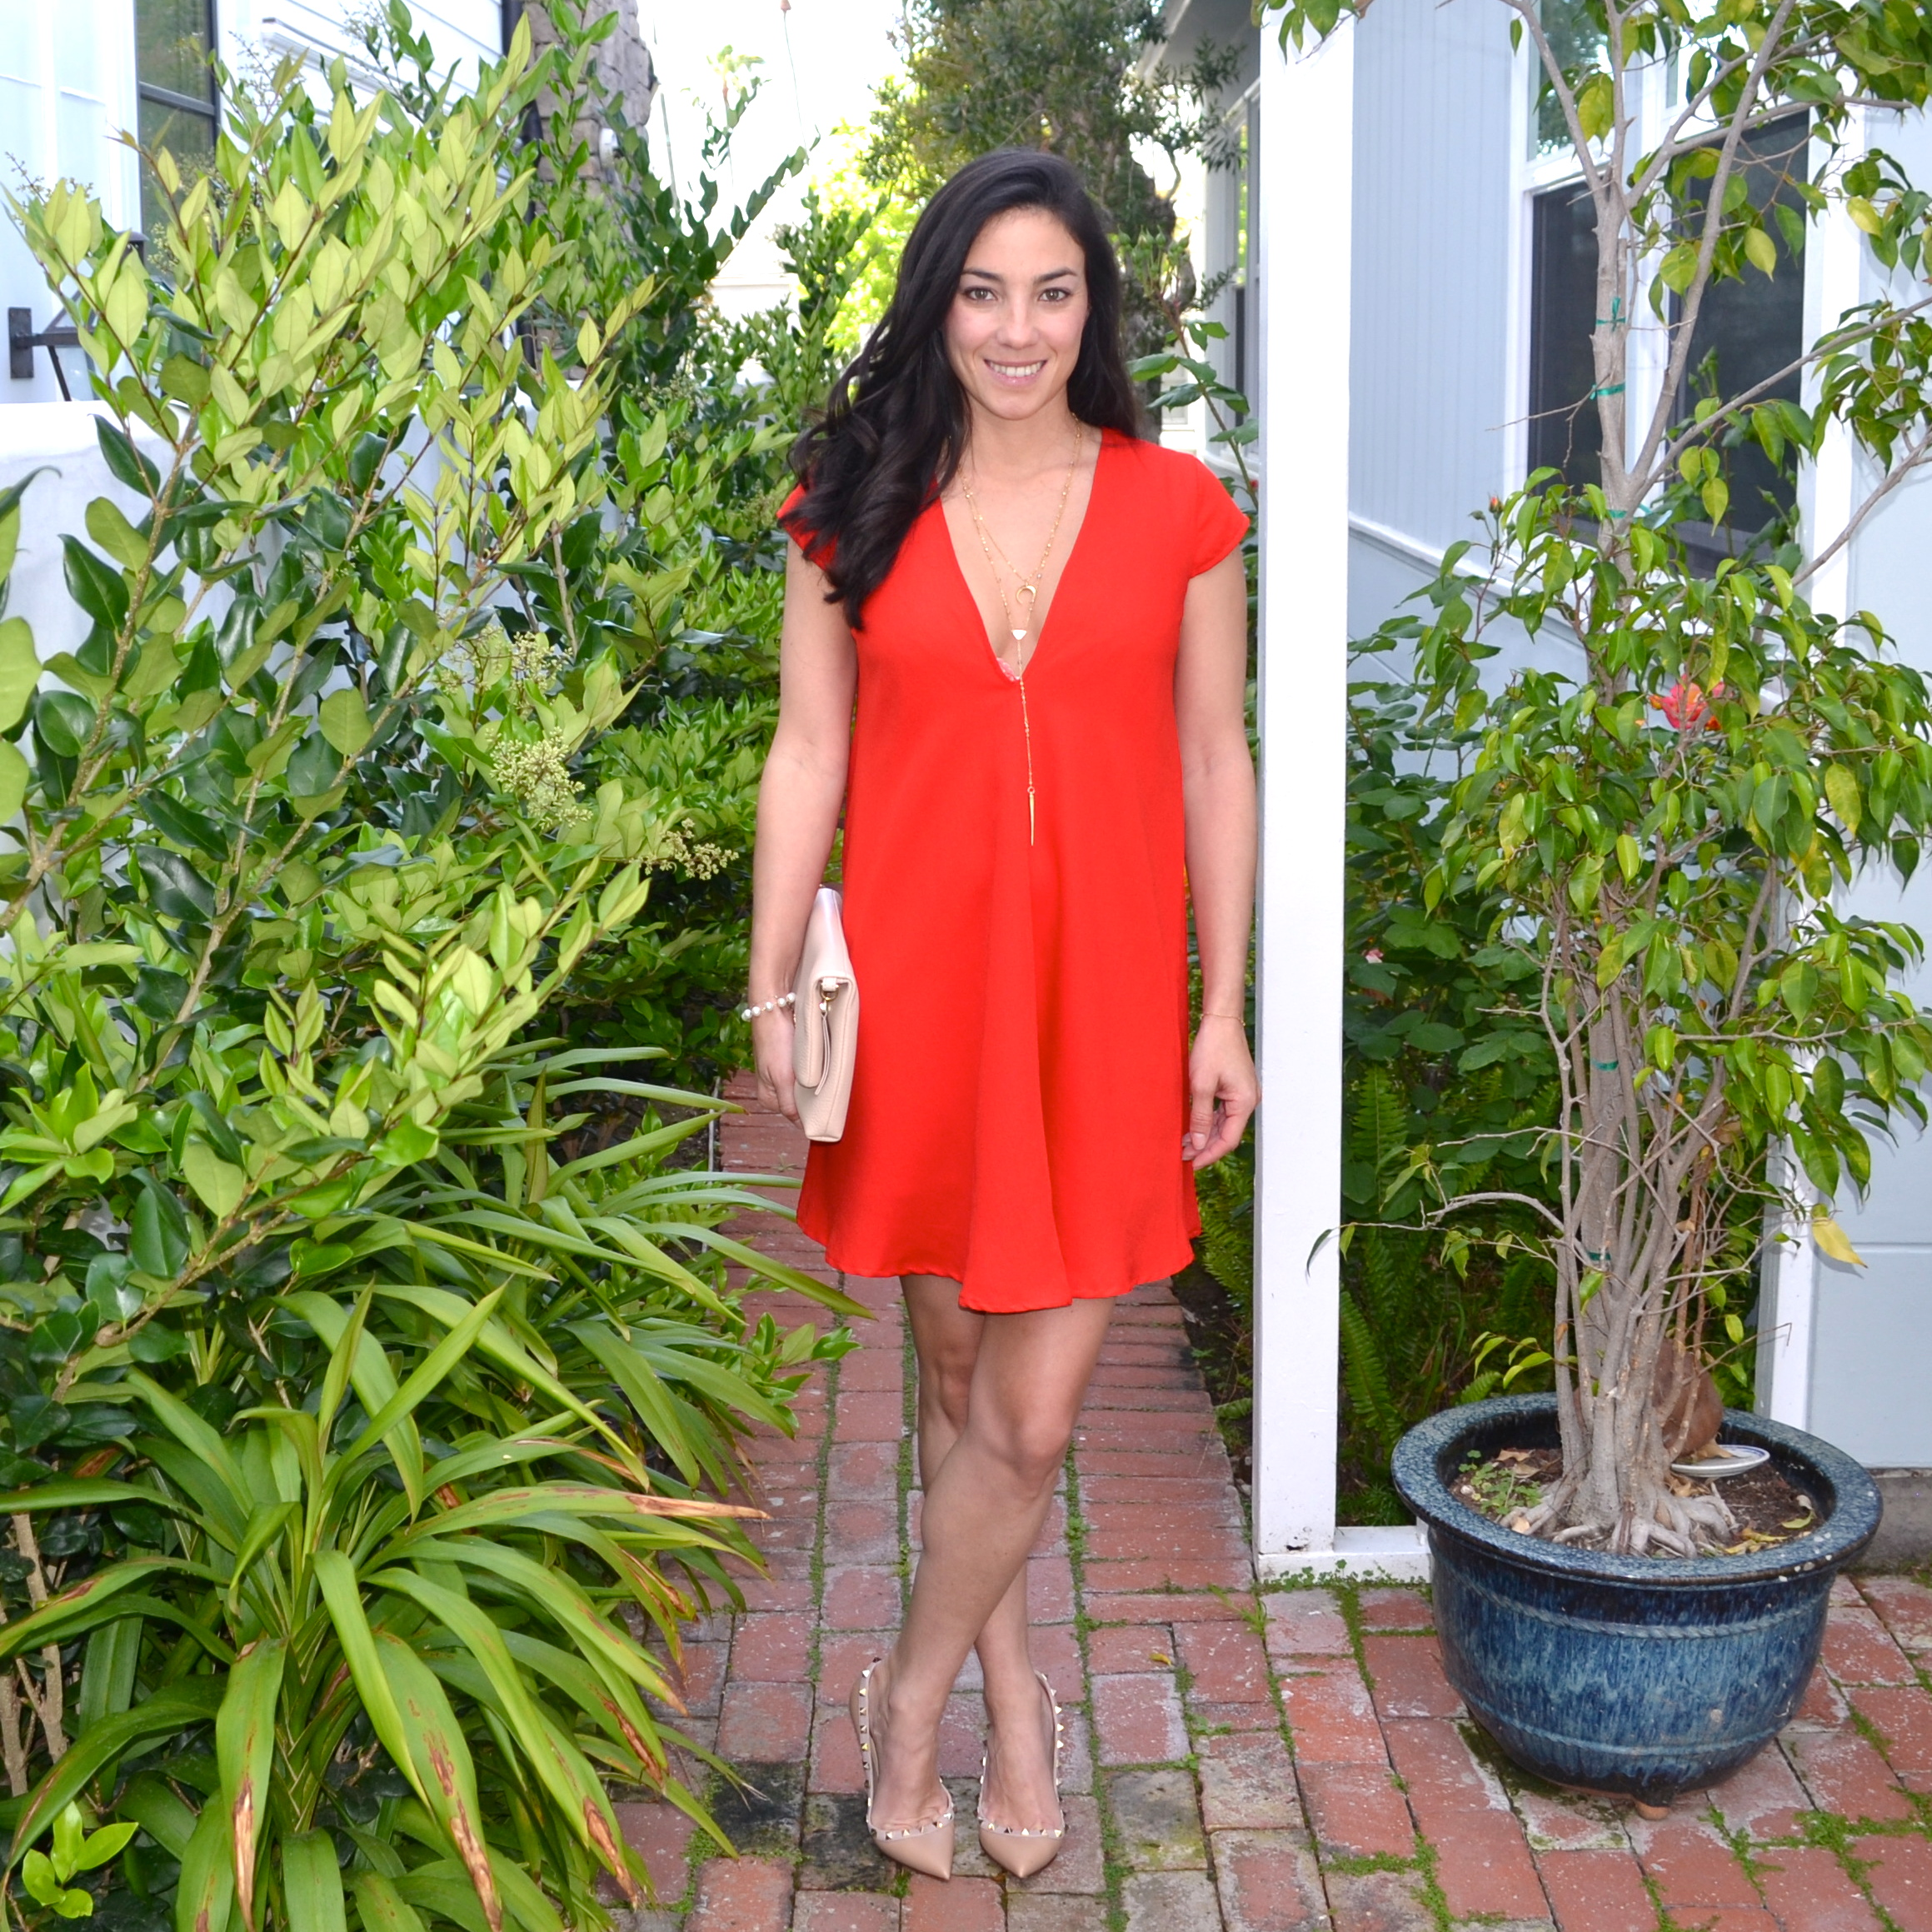 red dress outfit.JPG